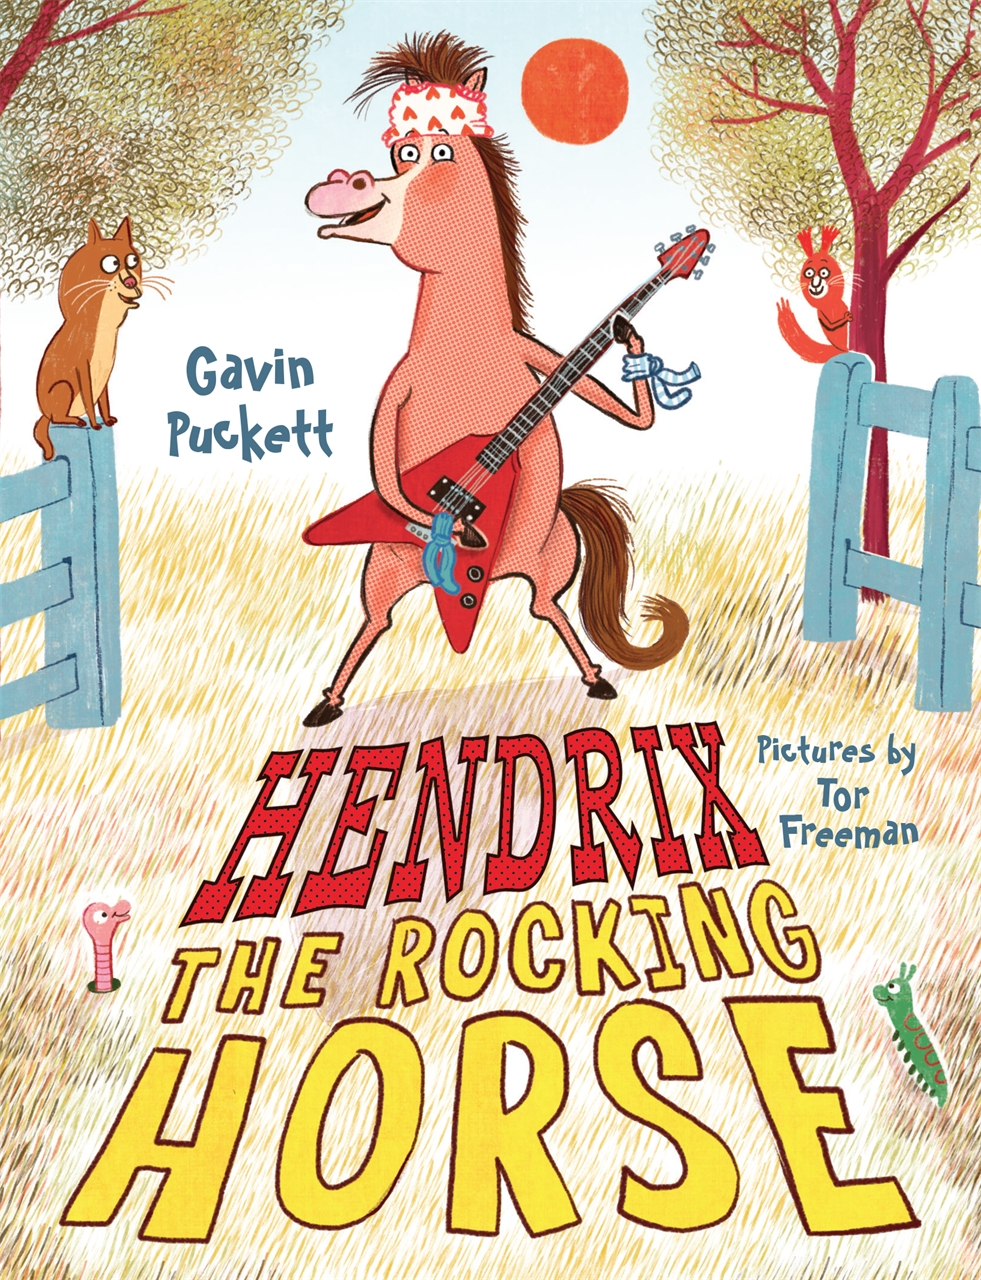 Hendrix the Rocking Horse